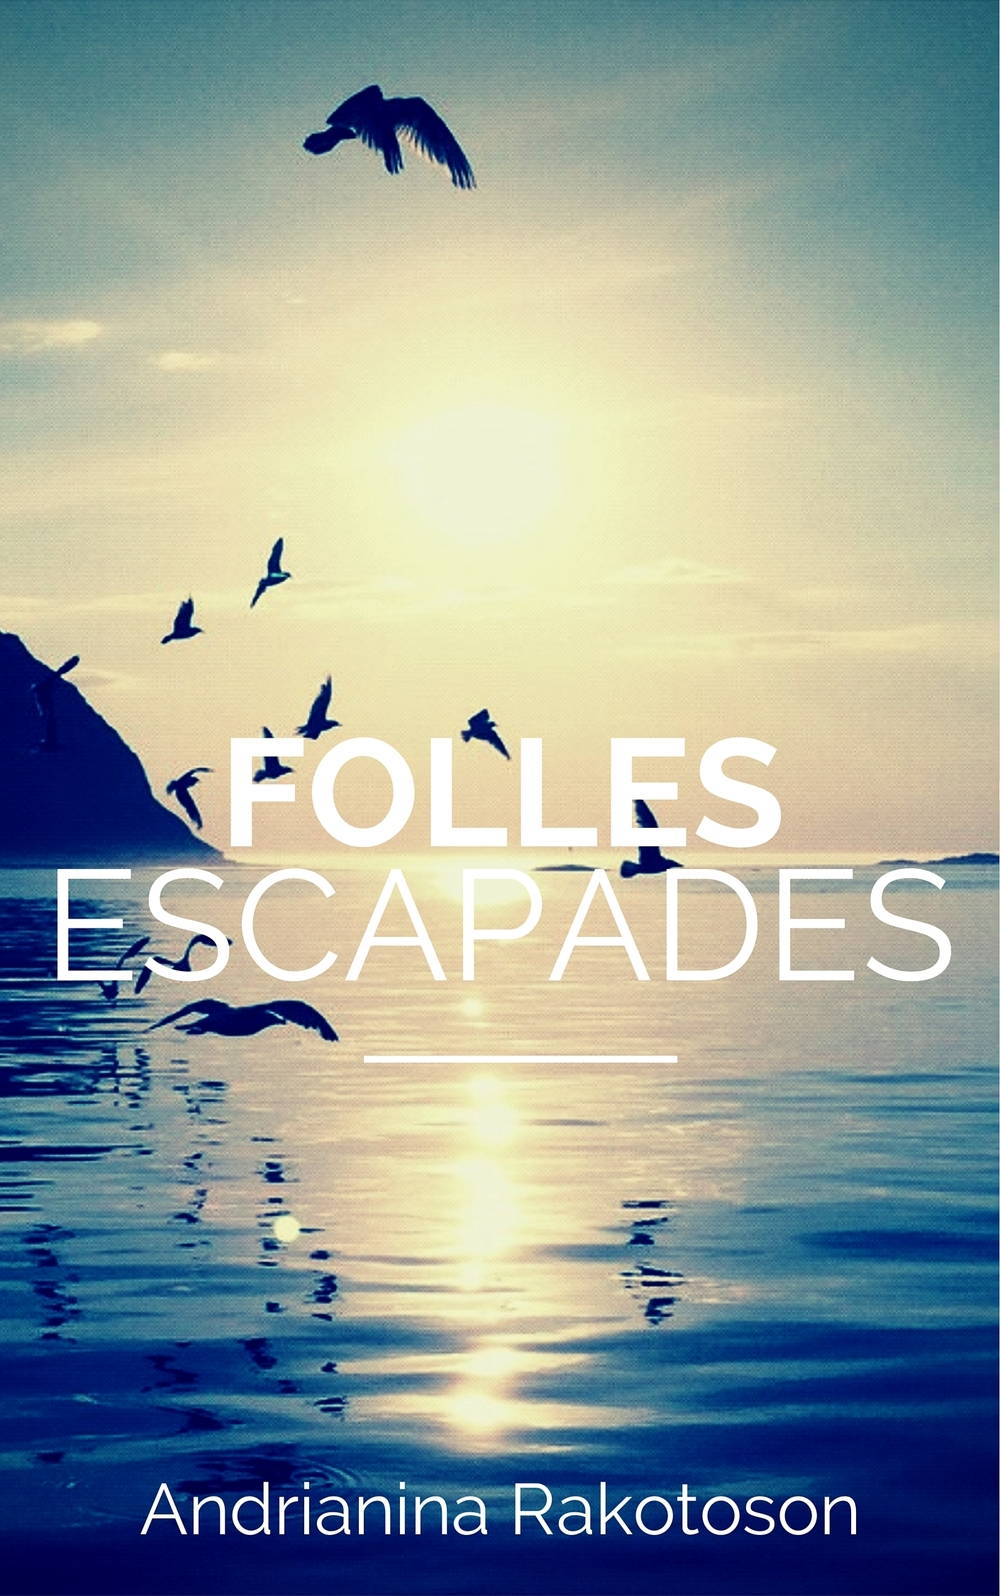 Folles escapades